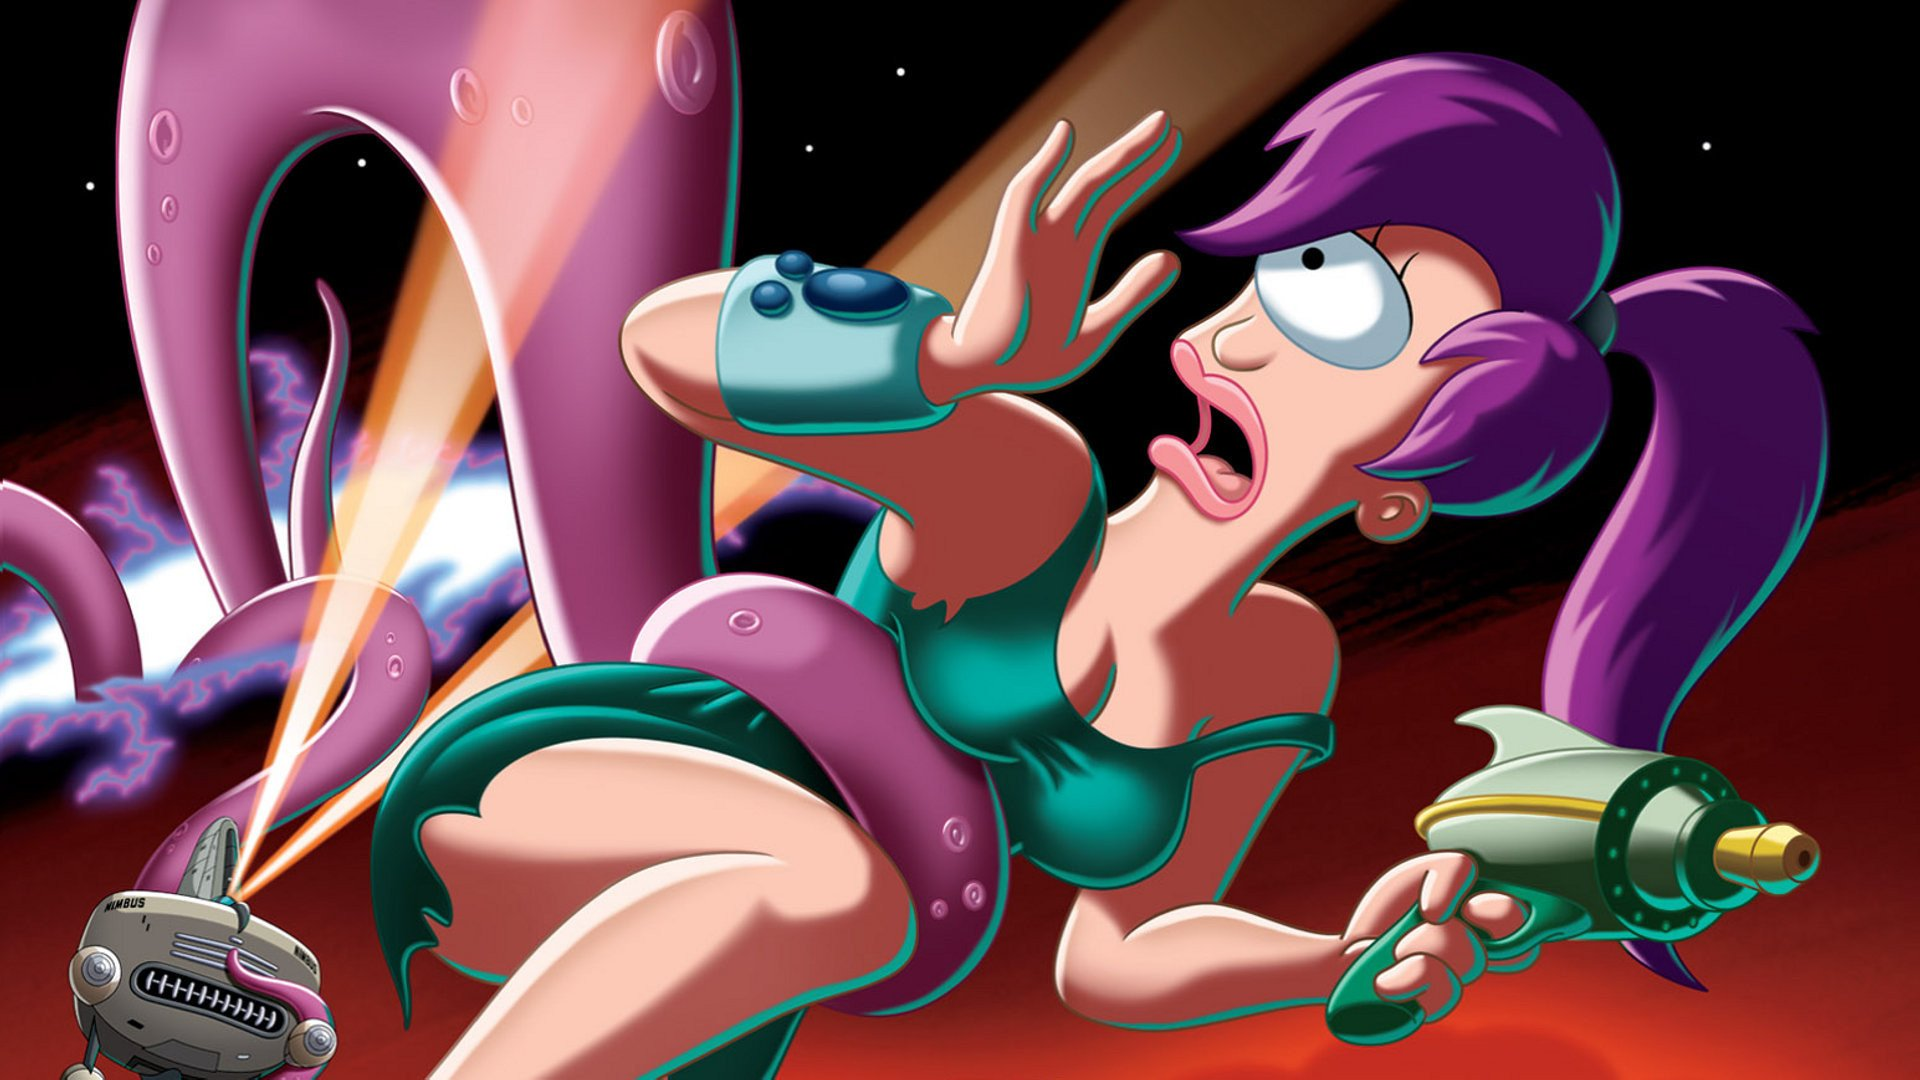 Futurama Iphone Wallpaper Futurama Full Hd Wallpaper And Background Image